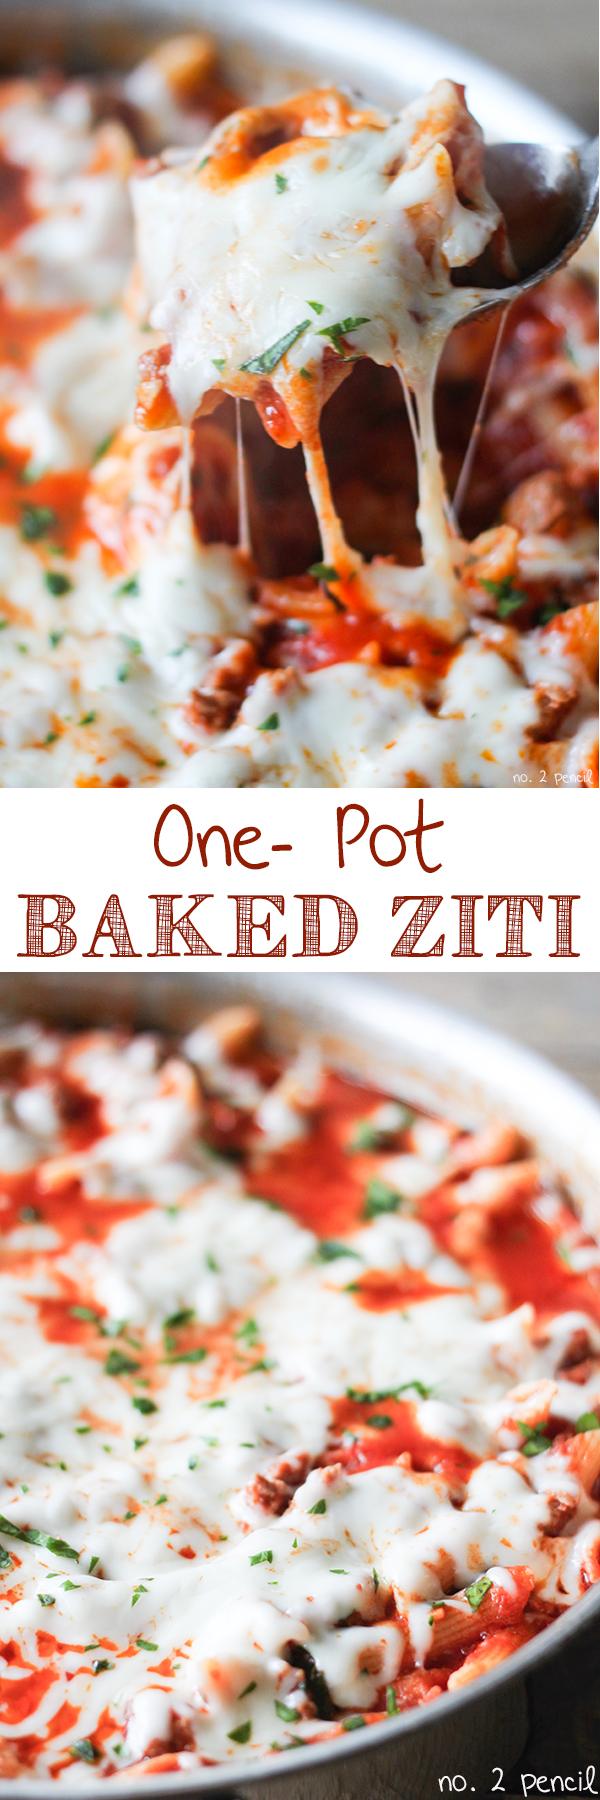 One-Pot Baked Ziti